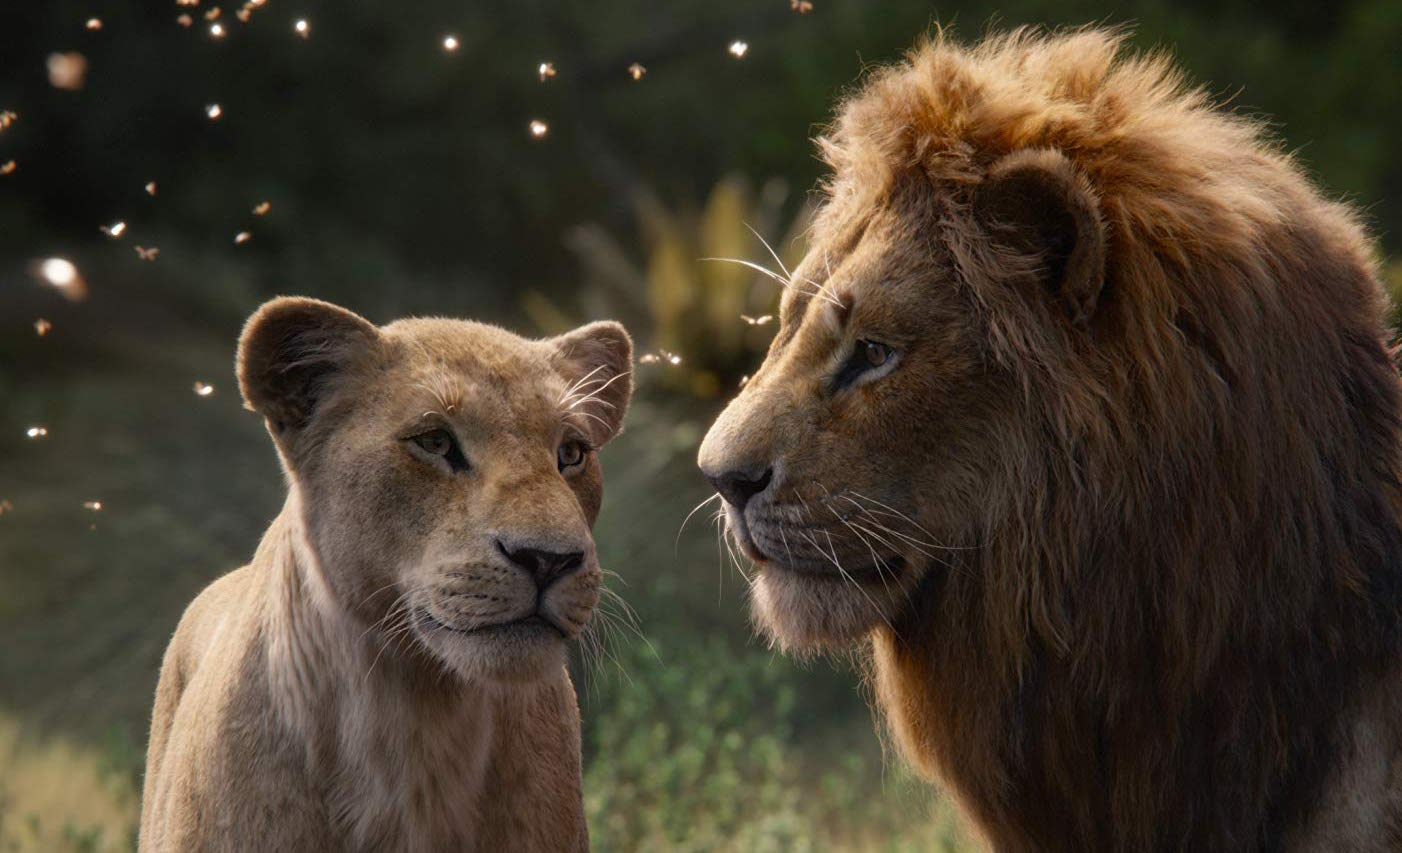 Nala (voiced by Beyoncé) and Simba (Donald Glover) star in the remake of